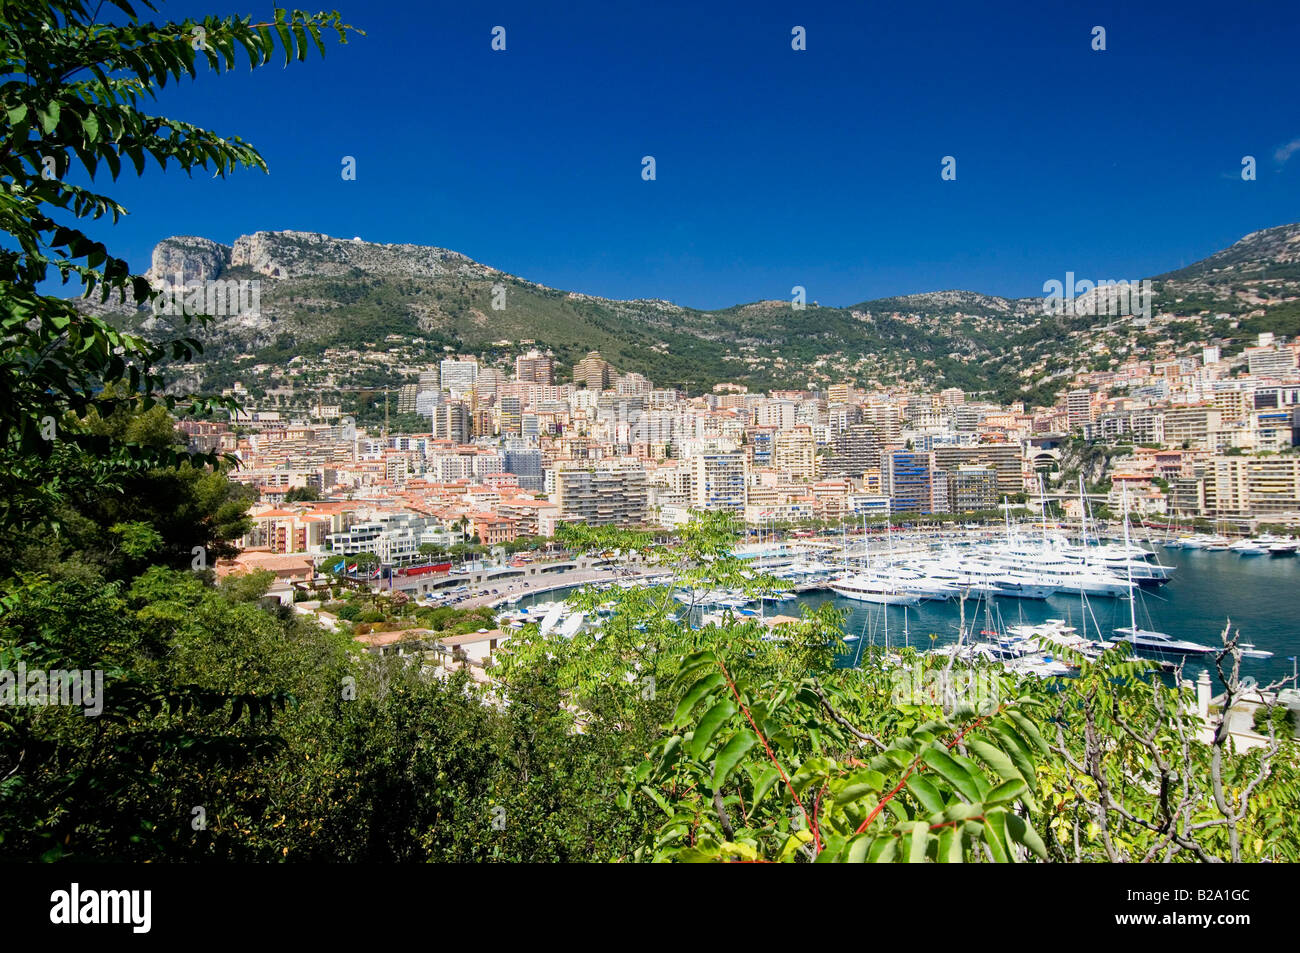 Monaco view over the port Date 12 02 2008 Ref WP B726 110139 0043 COMPULSORY CREDIT World Pictures Photoshot - Stock Image